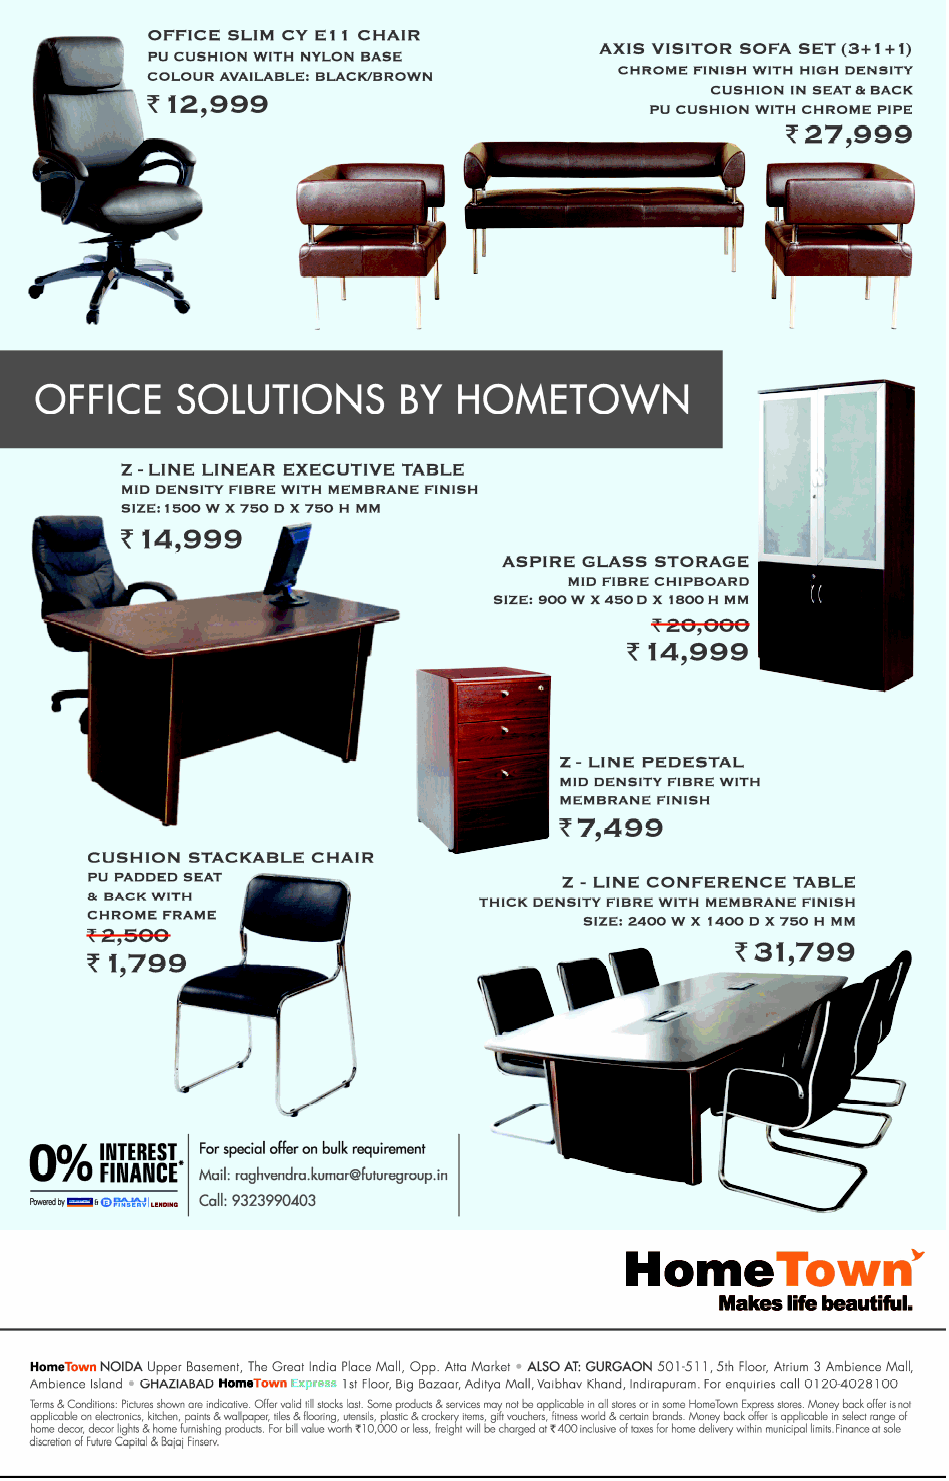 Home town office furniture 0 interest finance mumbai for Furniture 0 interest financing